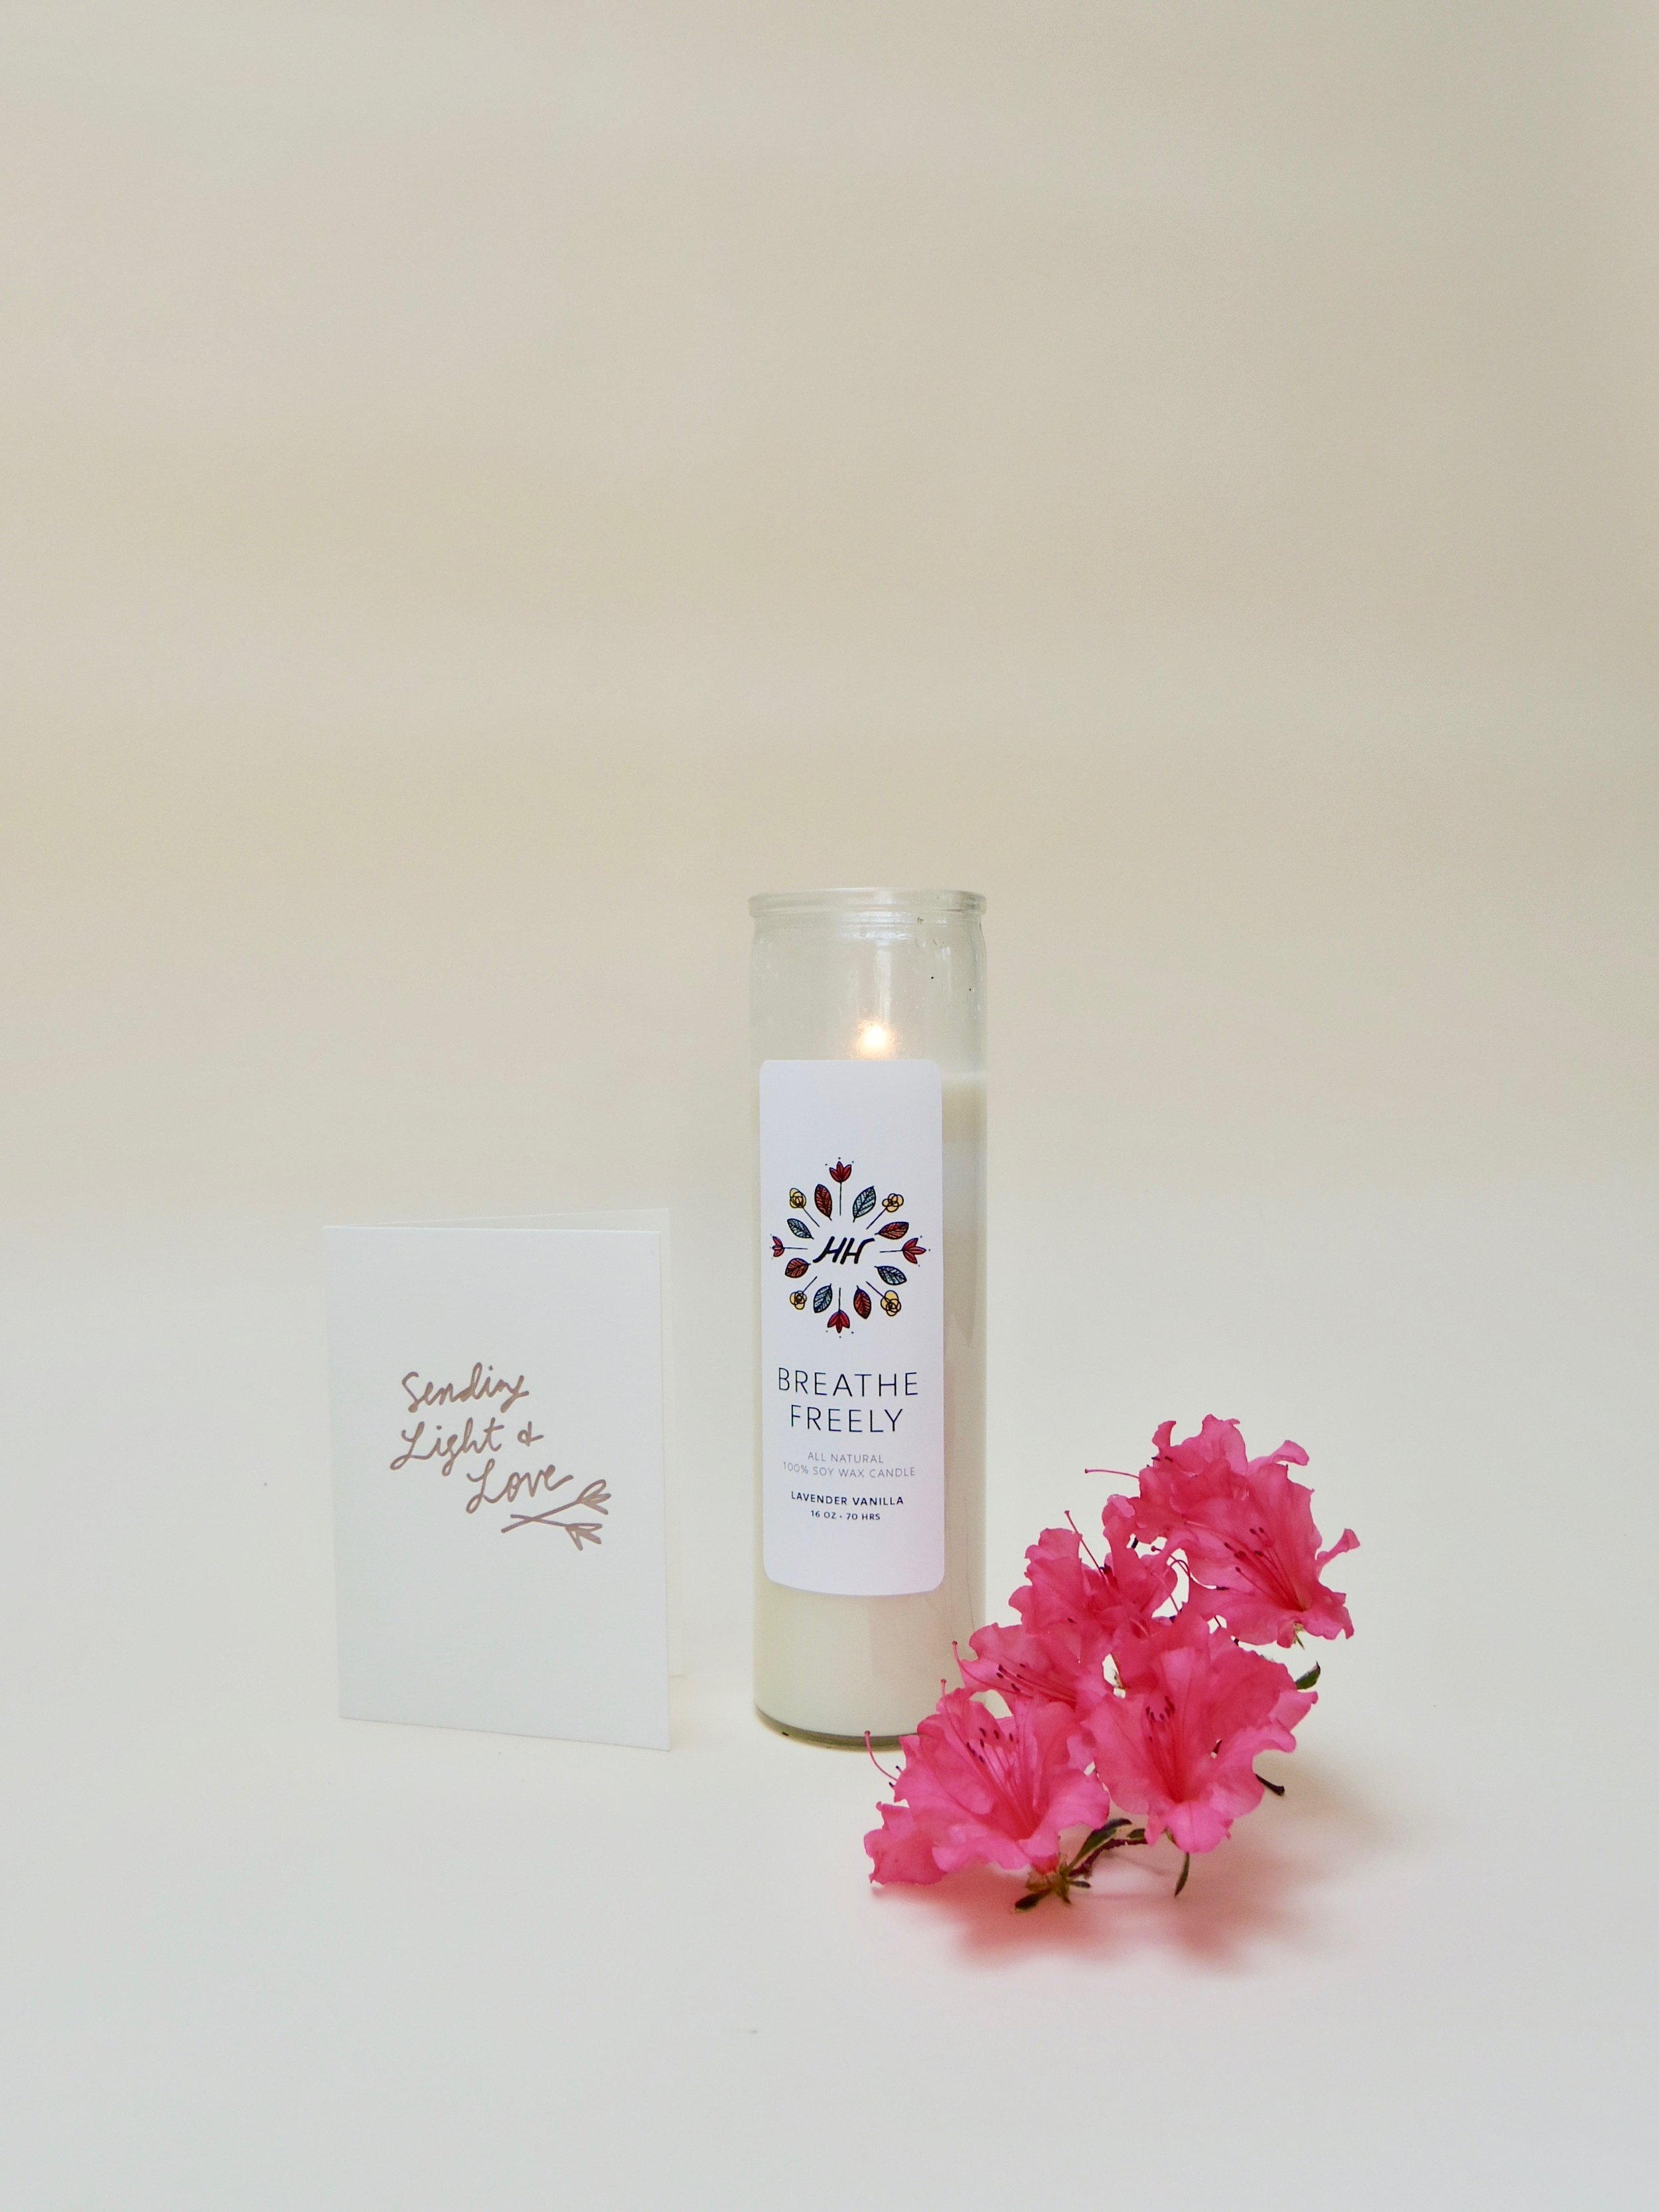 Breathe Freely soy candle  and  Sending Light and Love letterpress greeting card